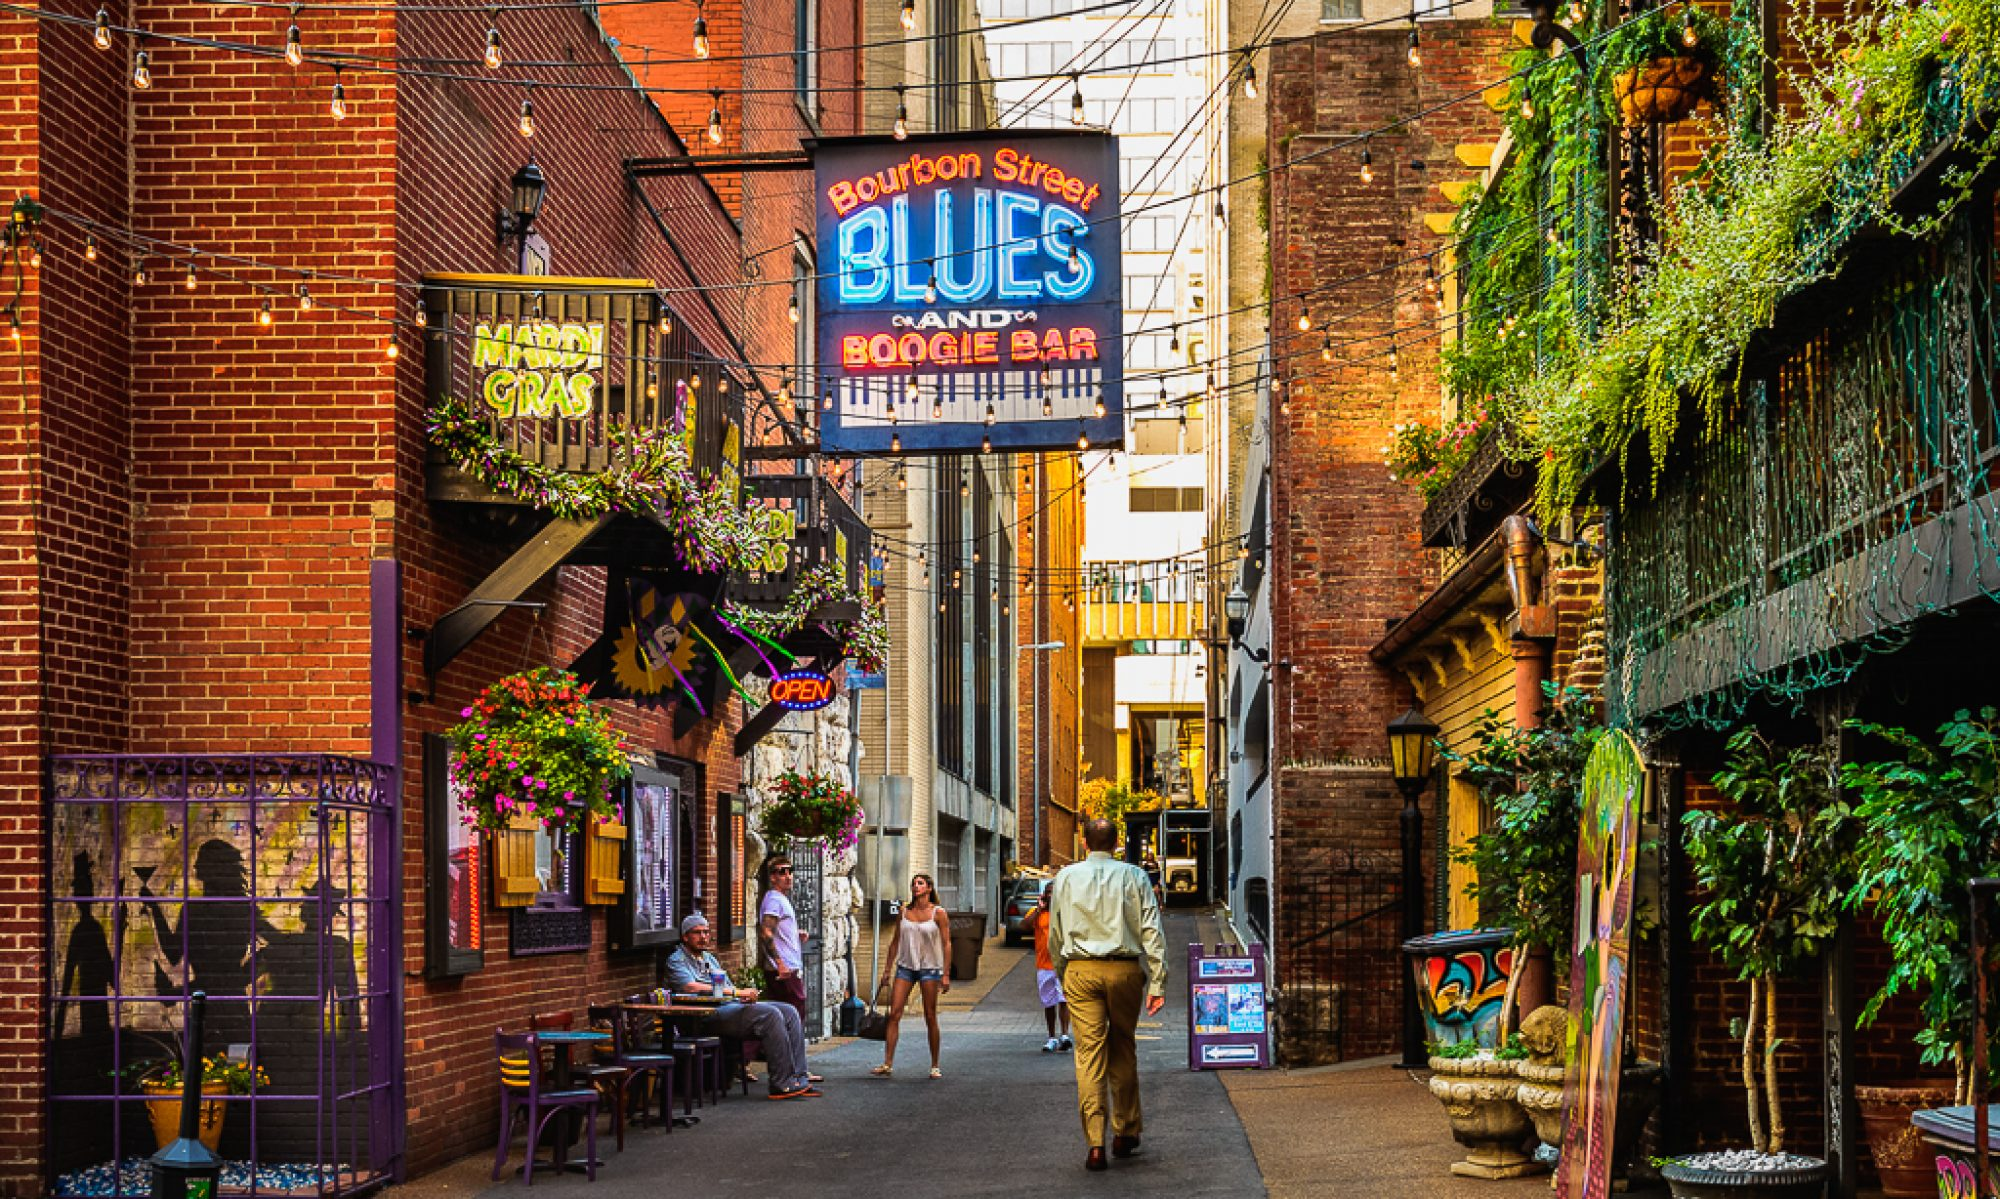 The Printer's Alley in Nashville